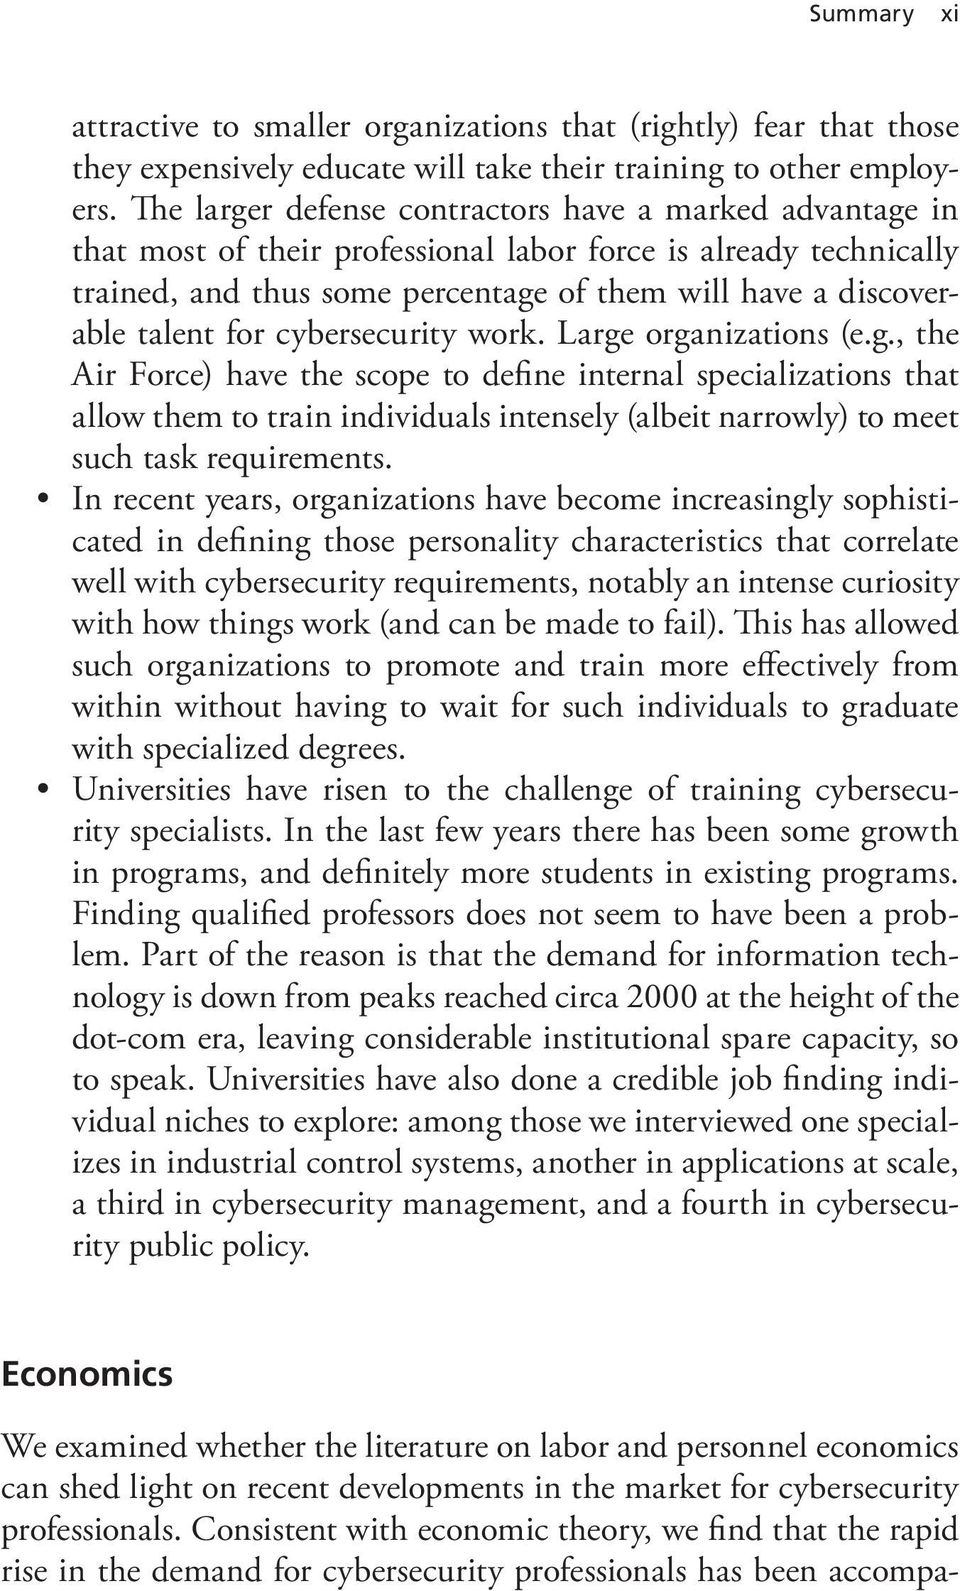 for cybersecurity work. Large organizations (e.g., the Air Force) have the scope to define internal specializations that allow them to train individuals intensely (albeit narrowly) to meet such task requirements.